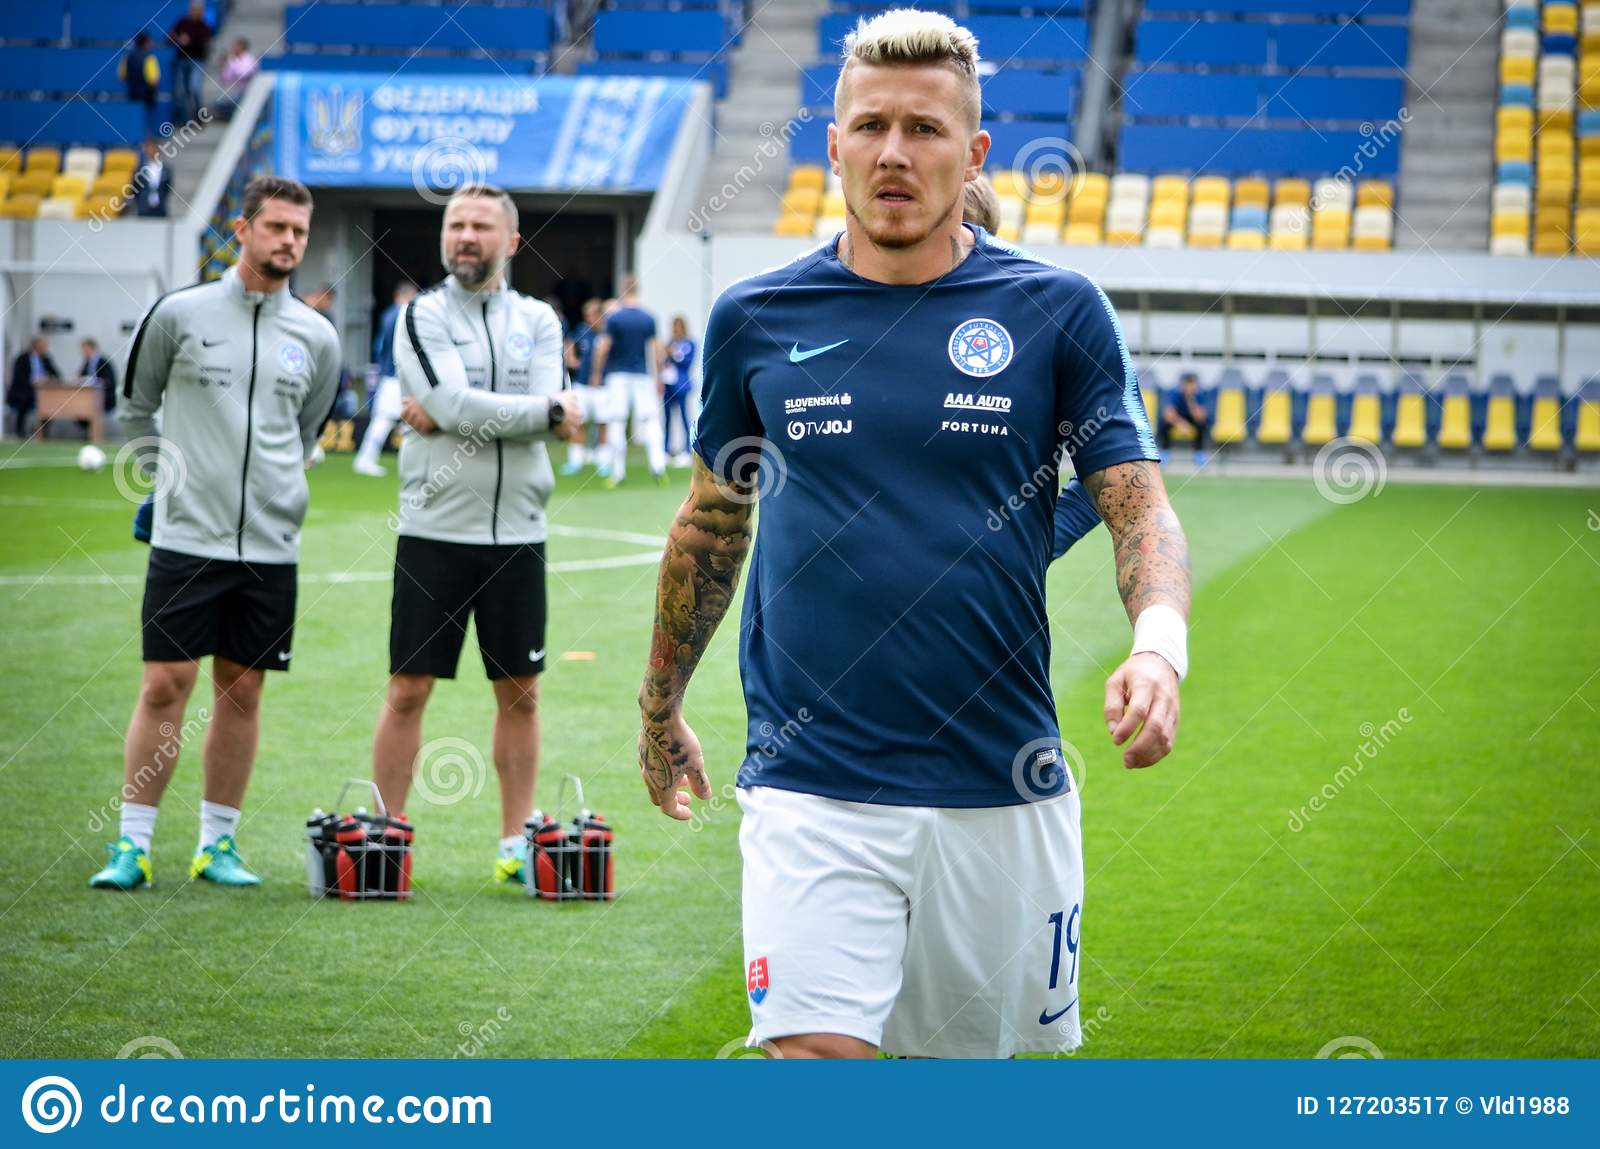 Lviv , Ukraine - August 10, 2018: Juraj Kucka during group selection of the UEFA Nations League between the national teams